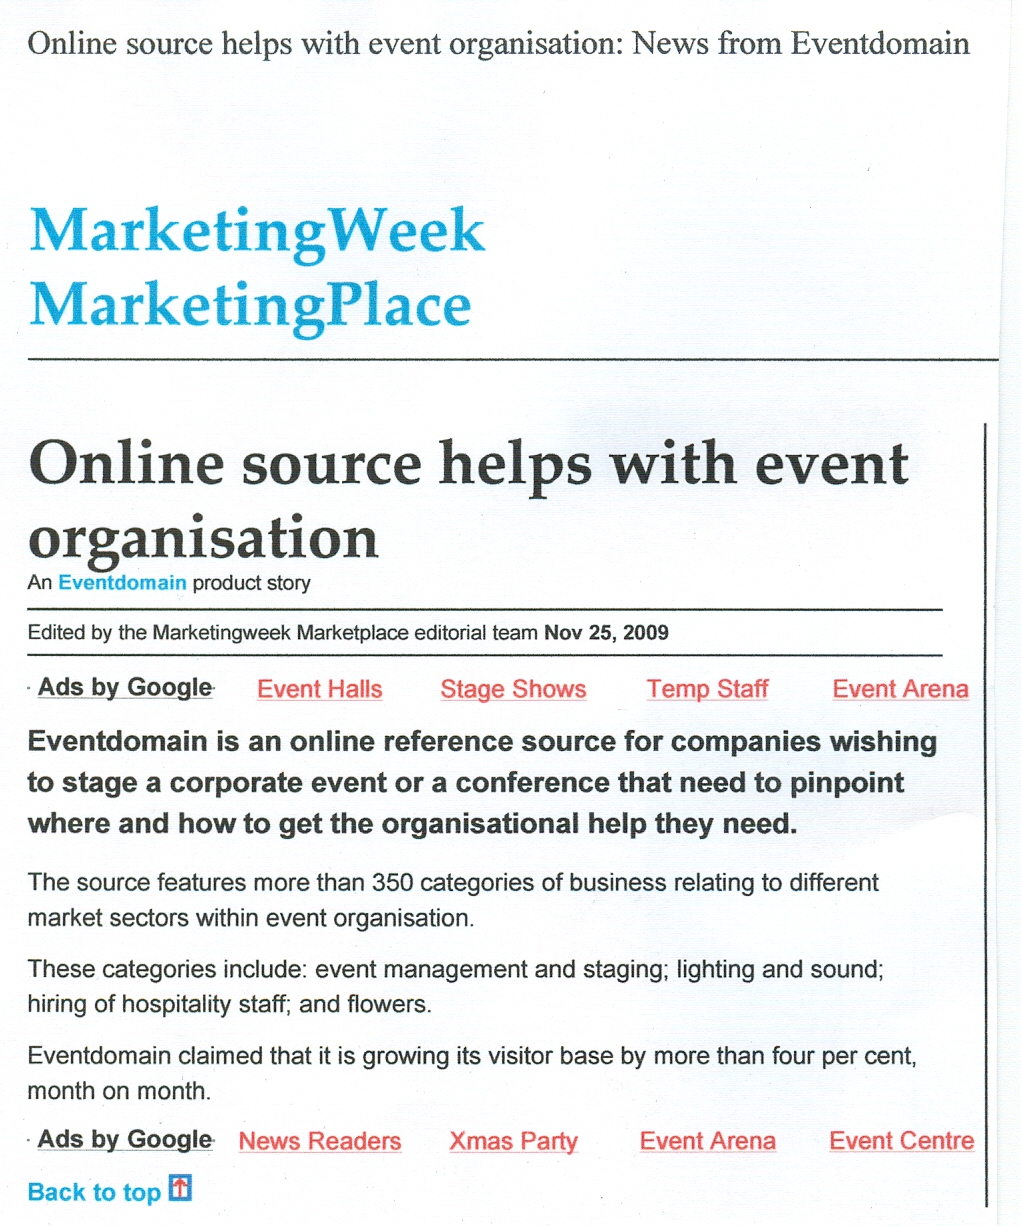 Online source helps with event organisation